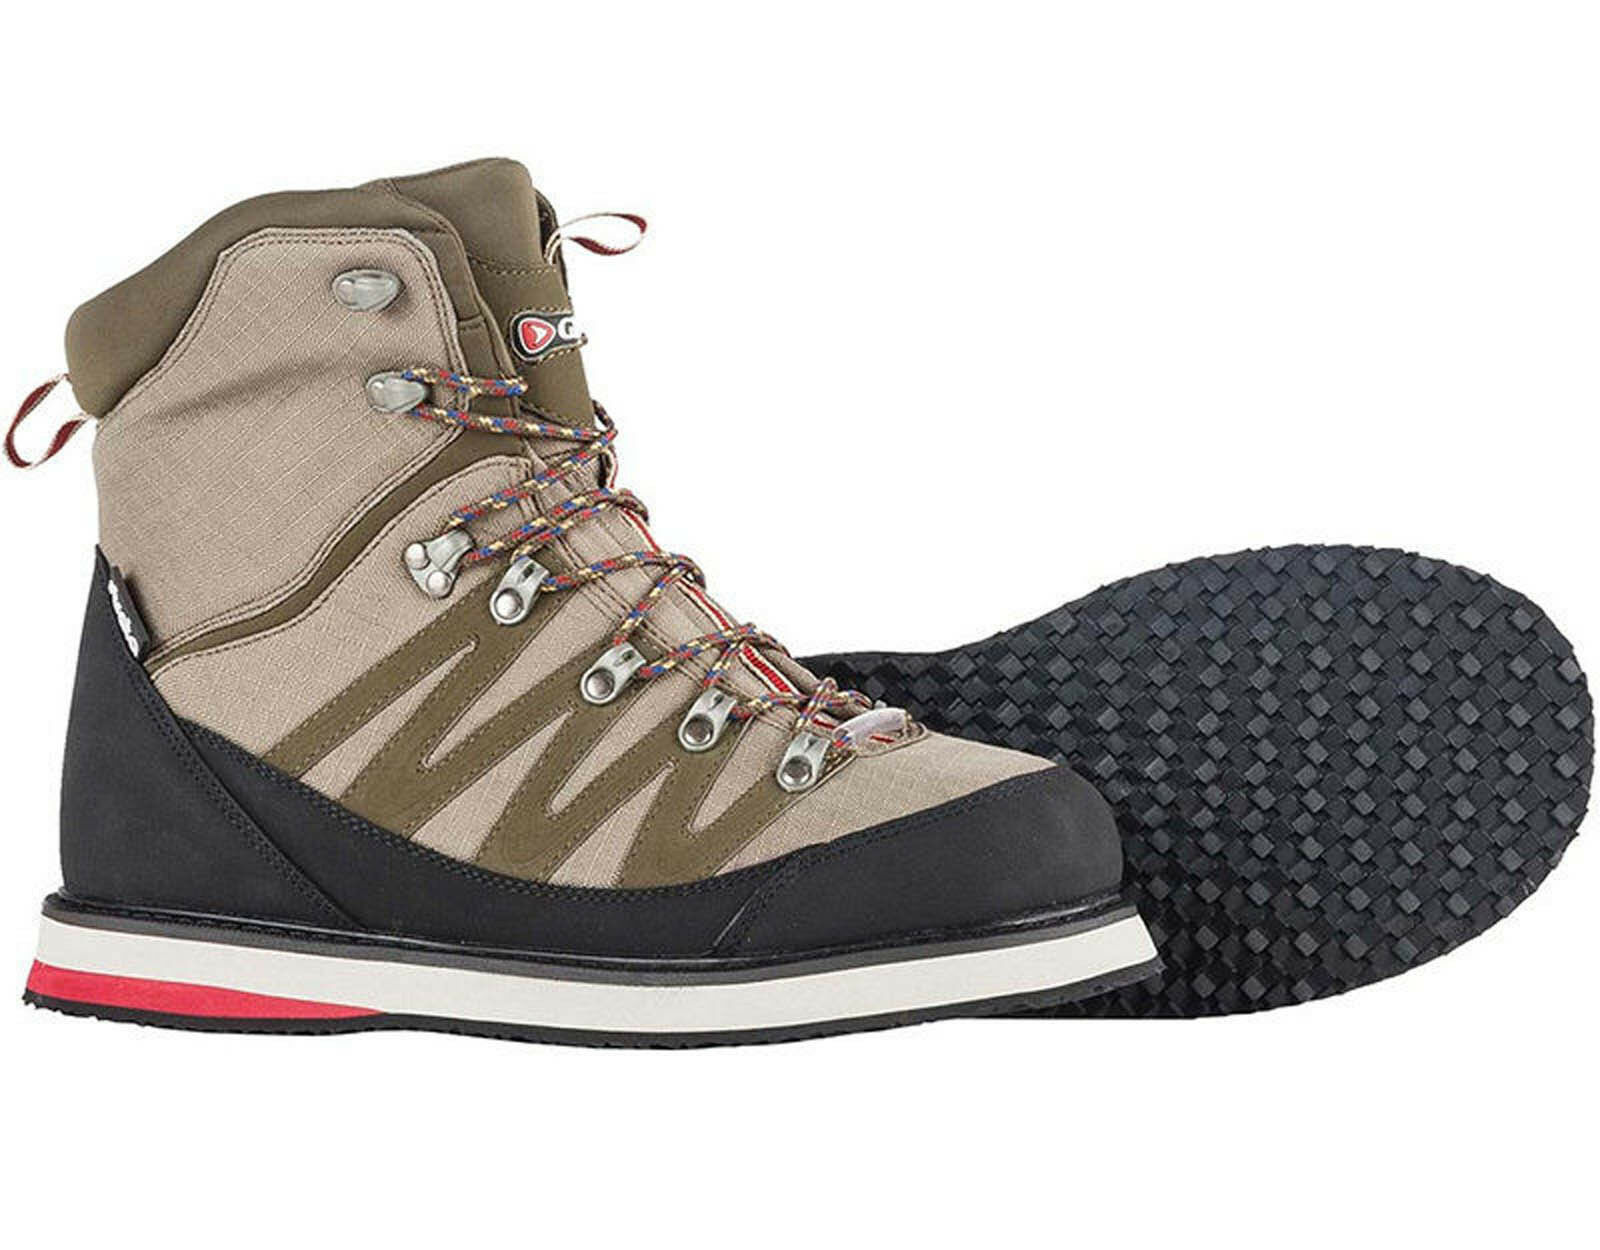 Greys Super-Light Easy Lace Strata CT Rubber Sole Wading Fishing Boots-All Sizes